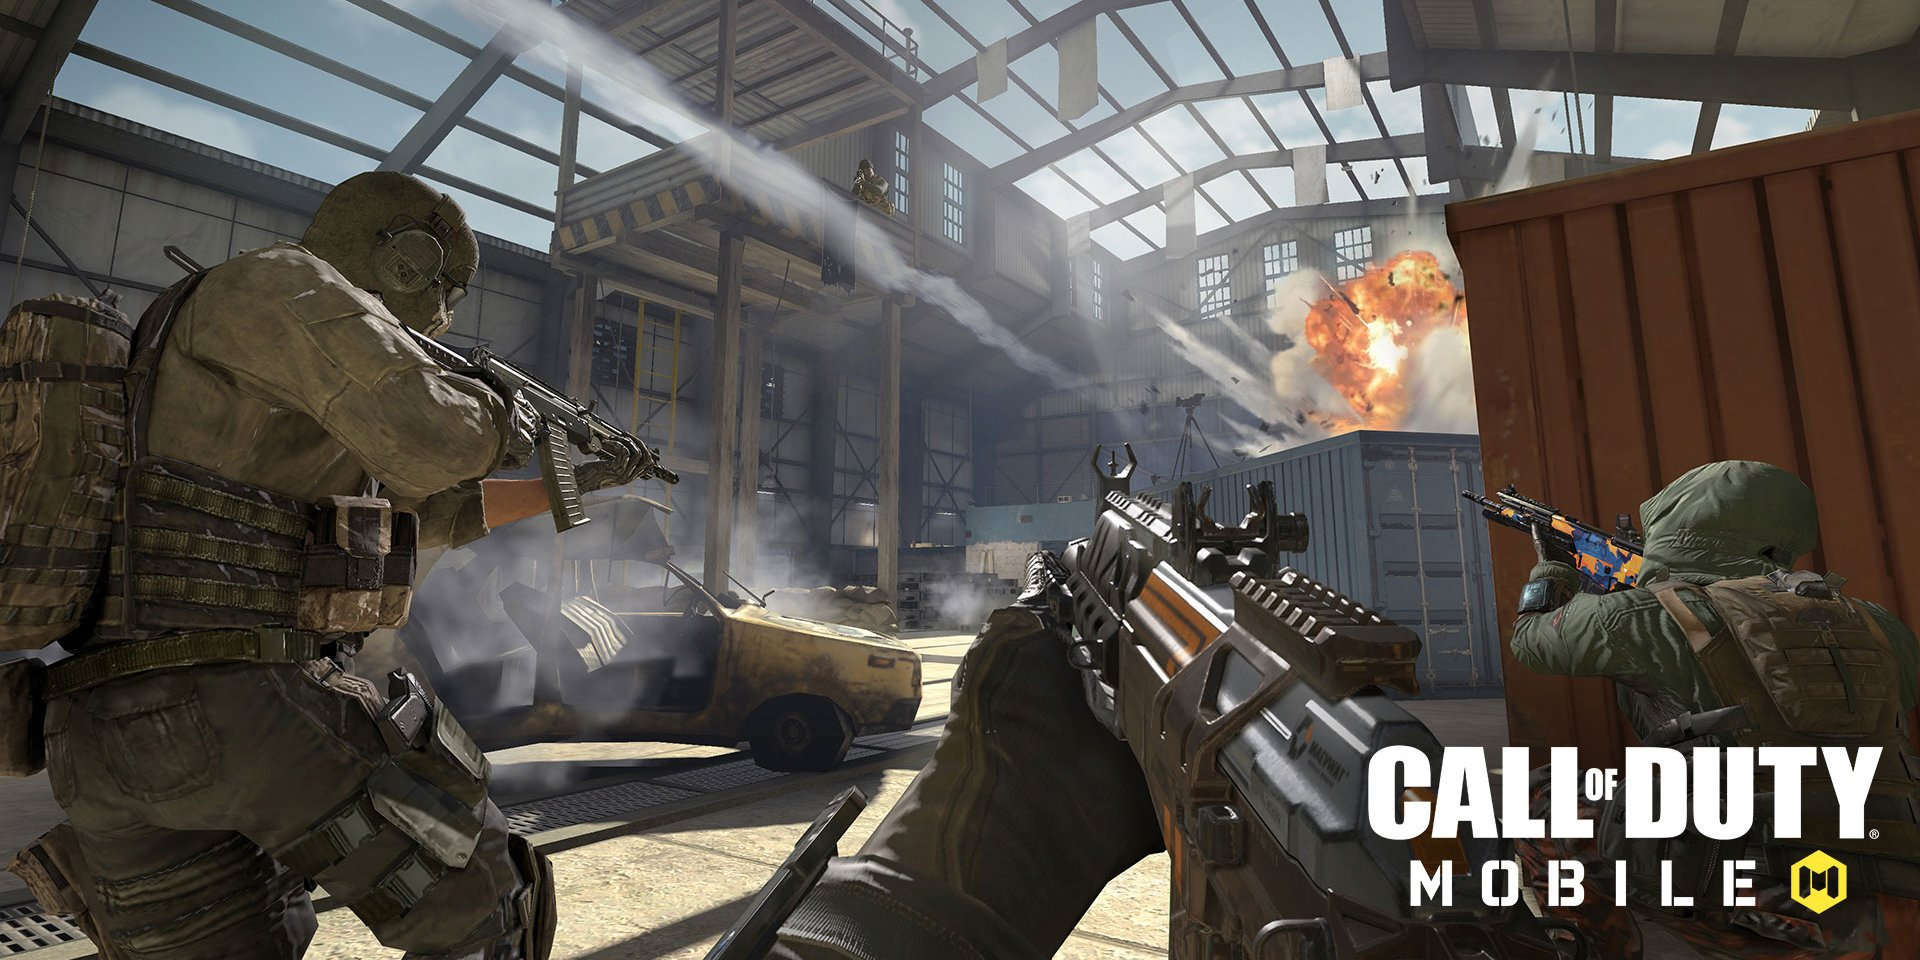 A new 'Call of Duty' game is coming to iPhone and Android on October 1 — Here's everything we know so far